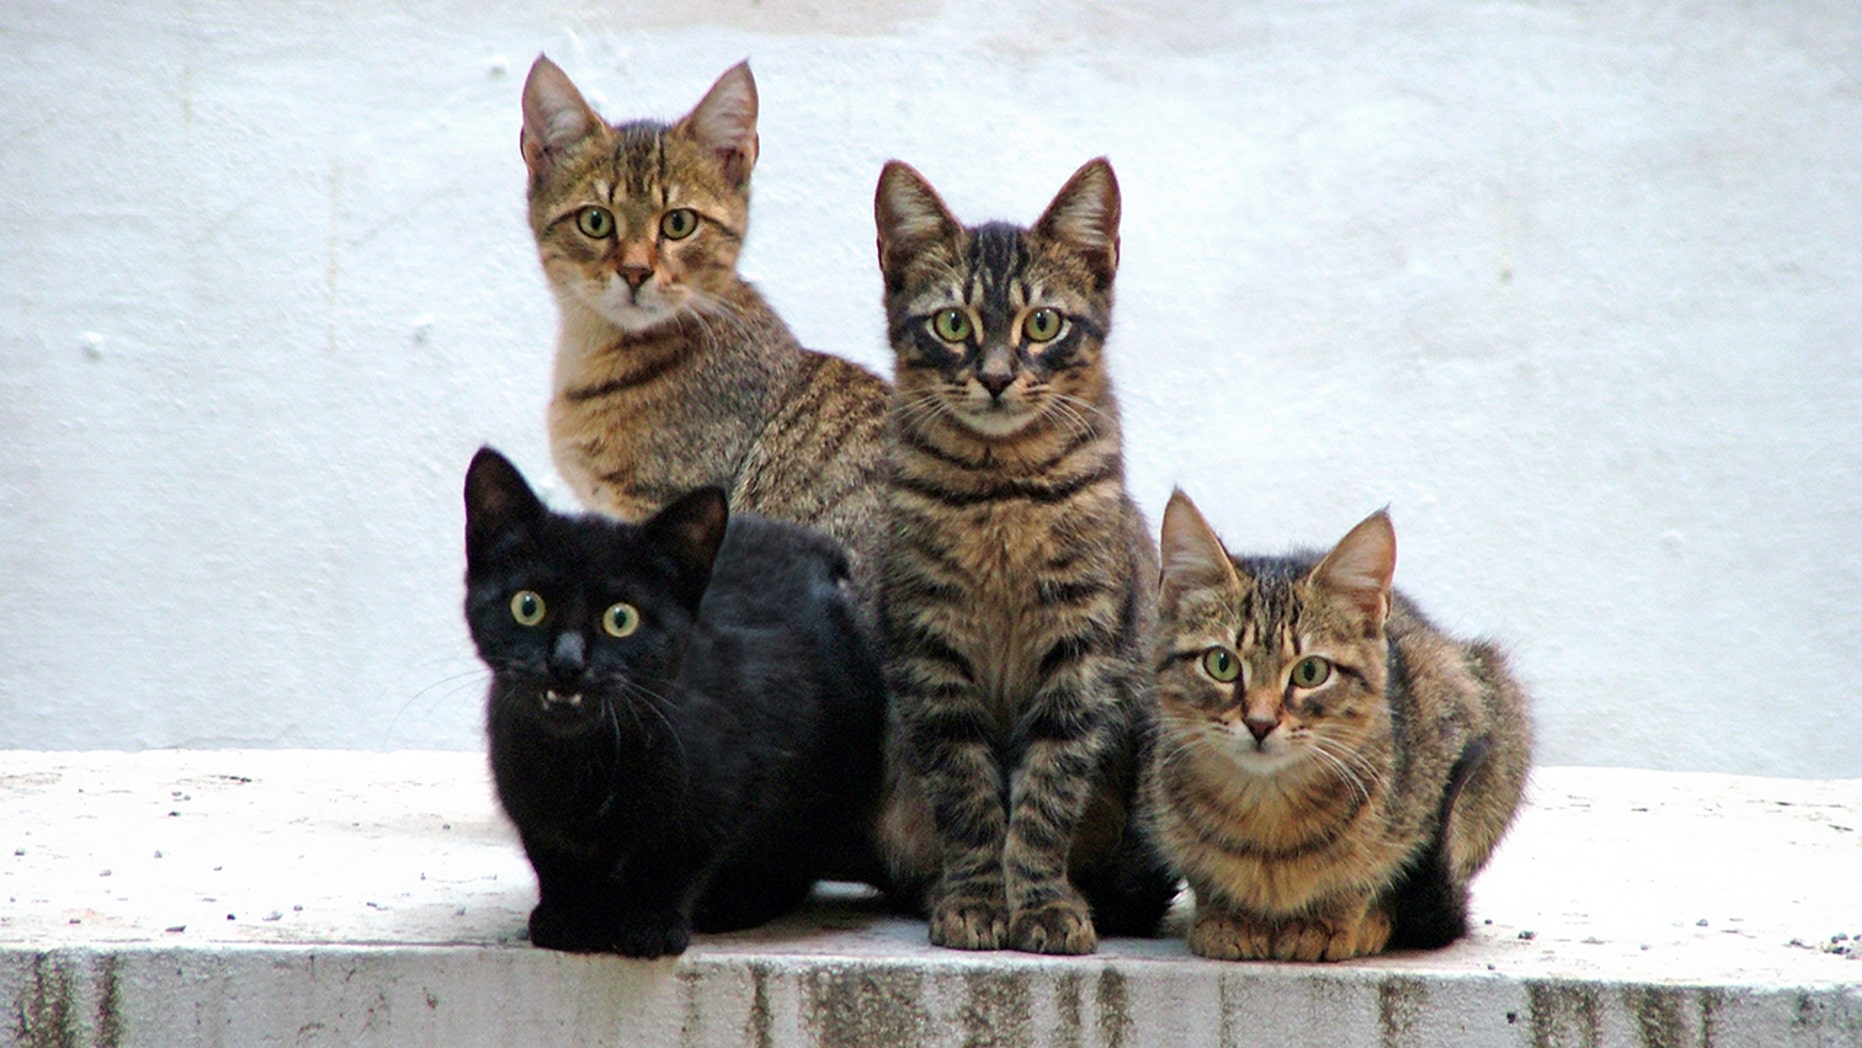 Both kittens and cats would be used in the testing process.